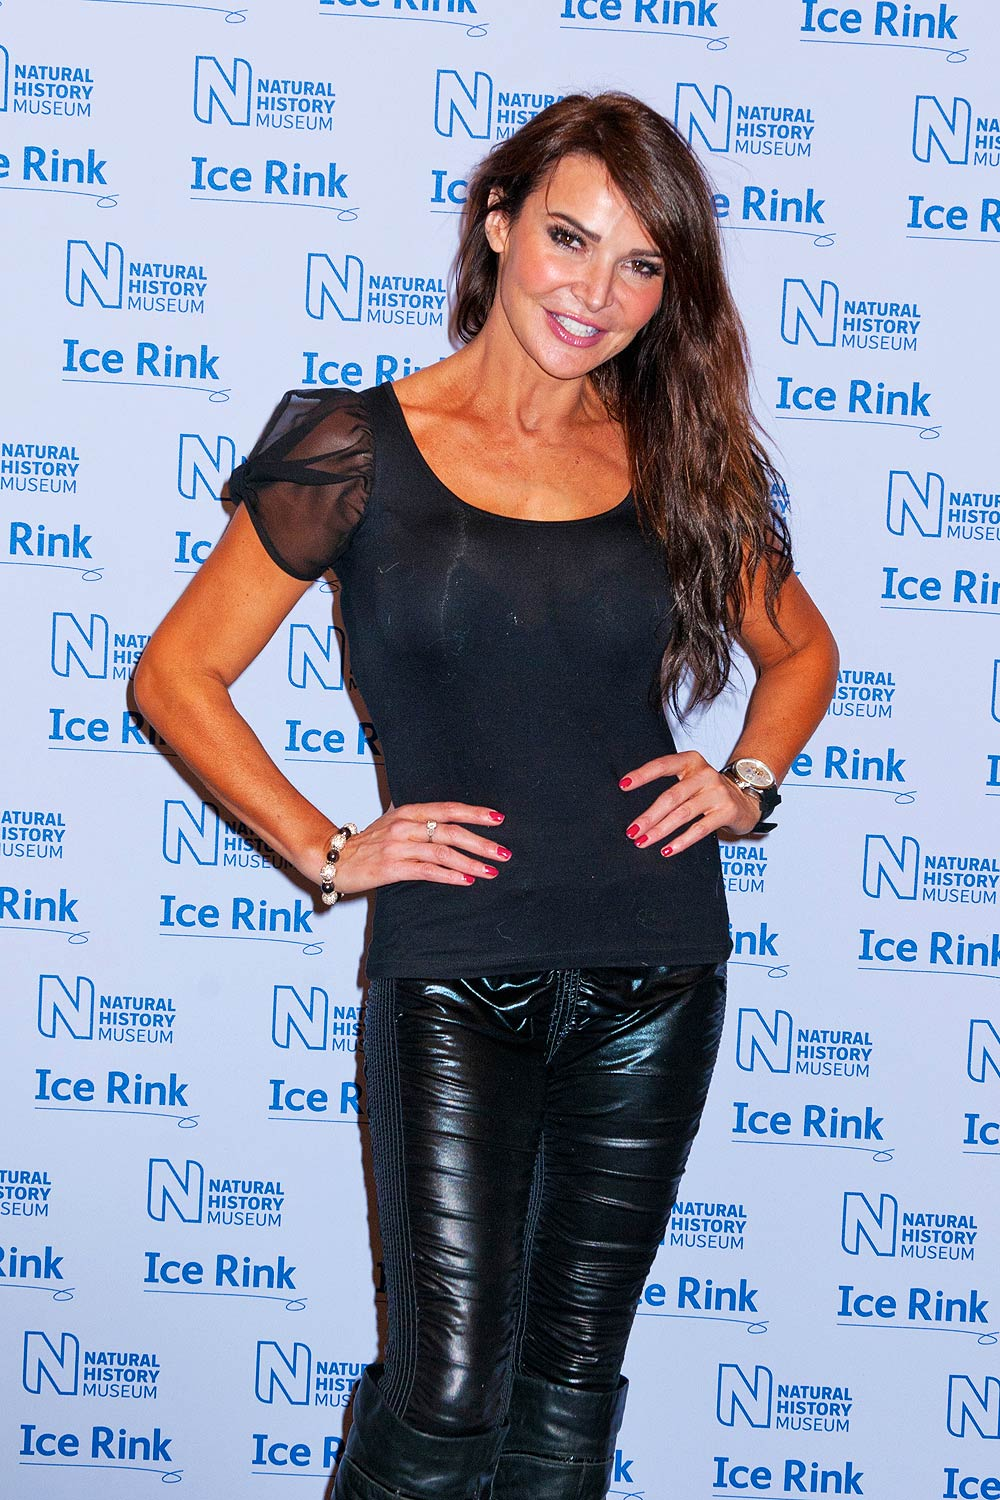 Lizzie Cundy attend the launch of the Natural History Museum